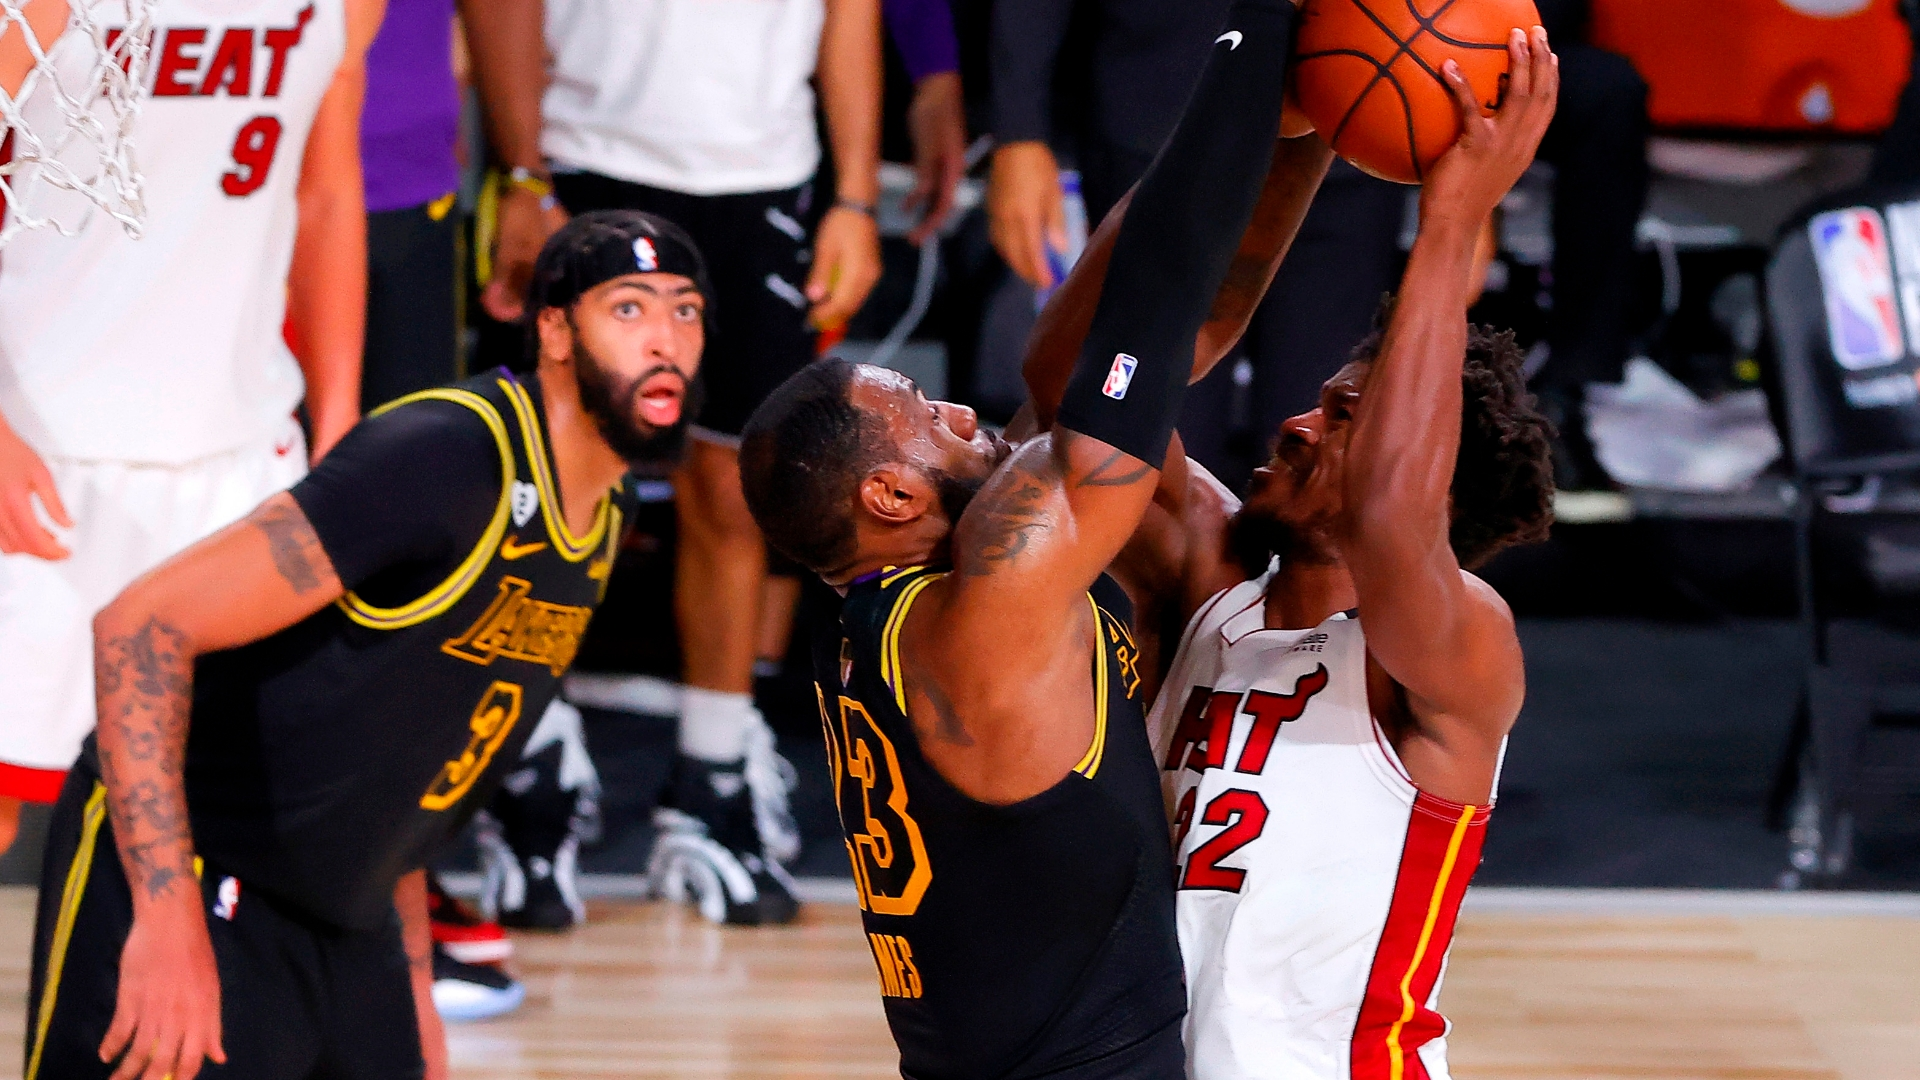 Nba Finals 2020 Game 2 Player Ratings For Los Angeles Lakers And Miami Heat Nba Com Australia The Official Site Of The Nba